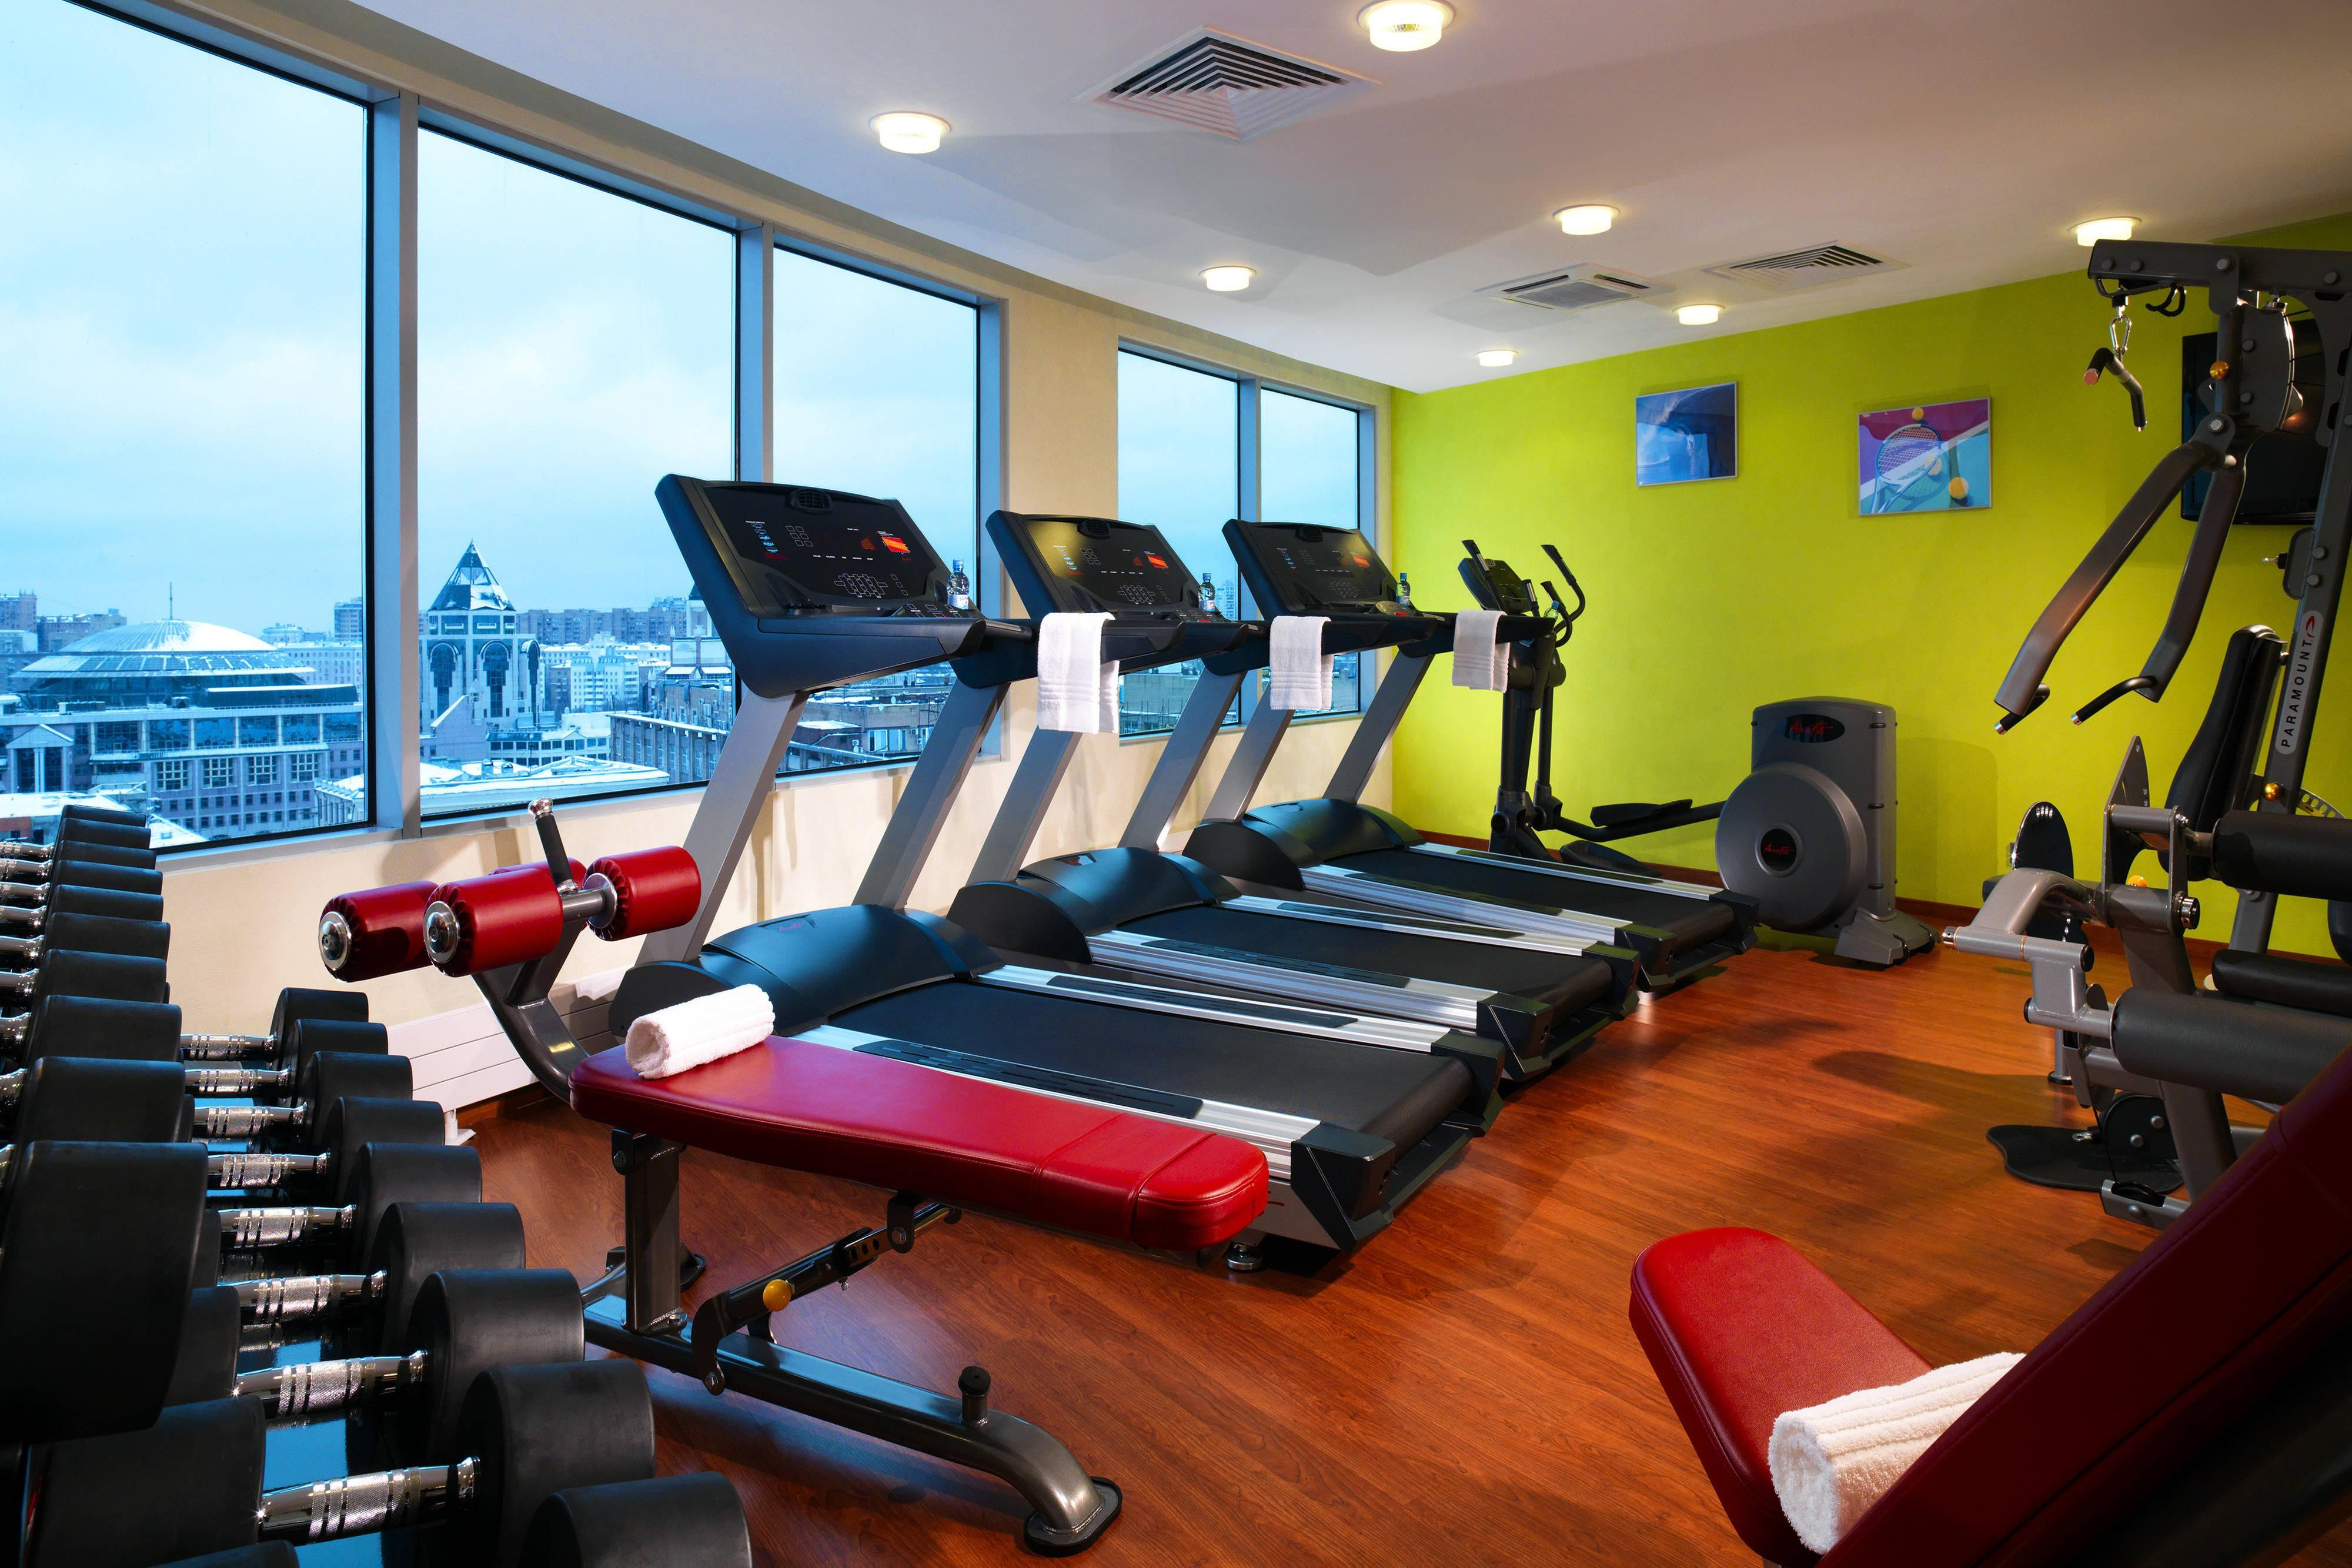 Moscow hotel fitness center